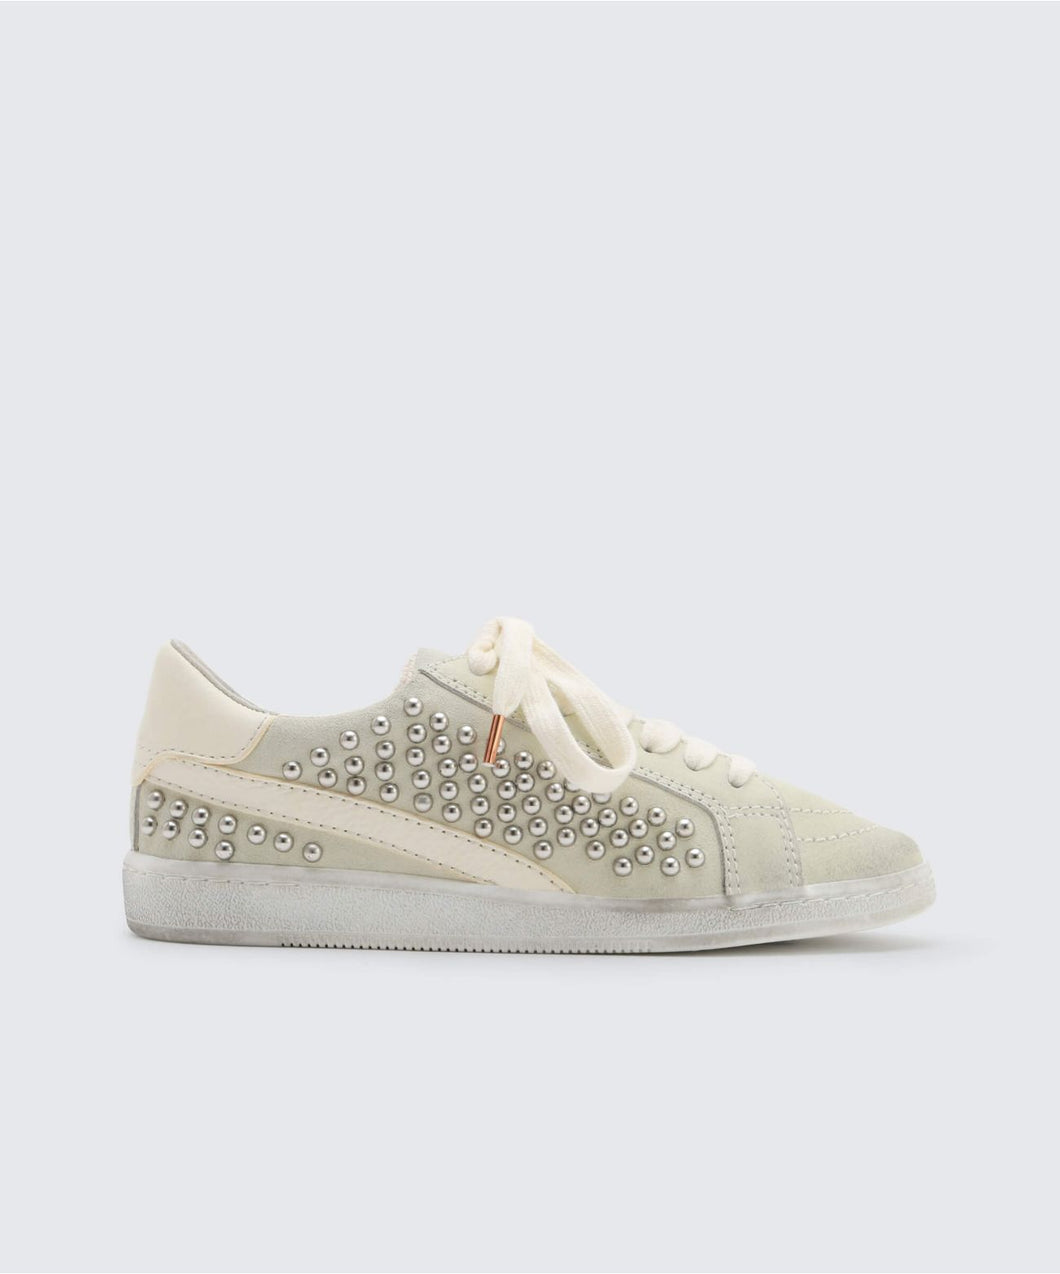 NINO STUDDED SNEAKERS IN WHITE -   Dolce Vita